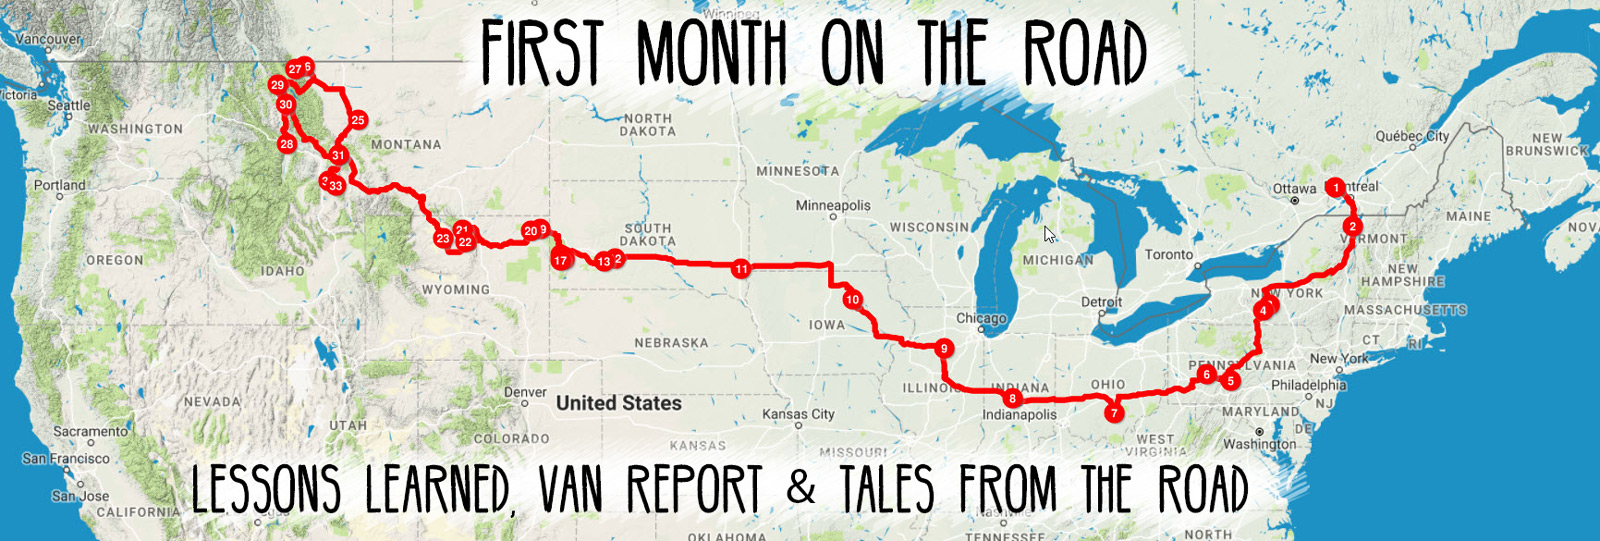 first month road map heading 1600